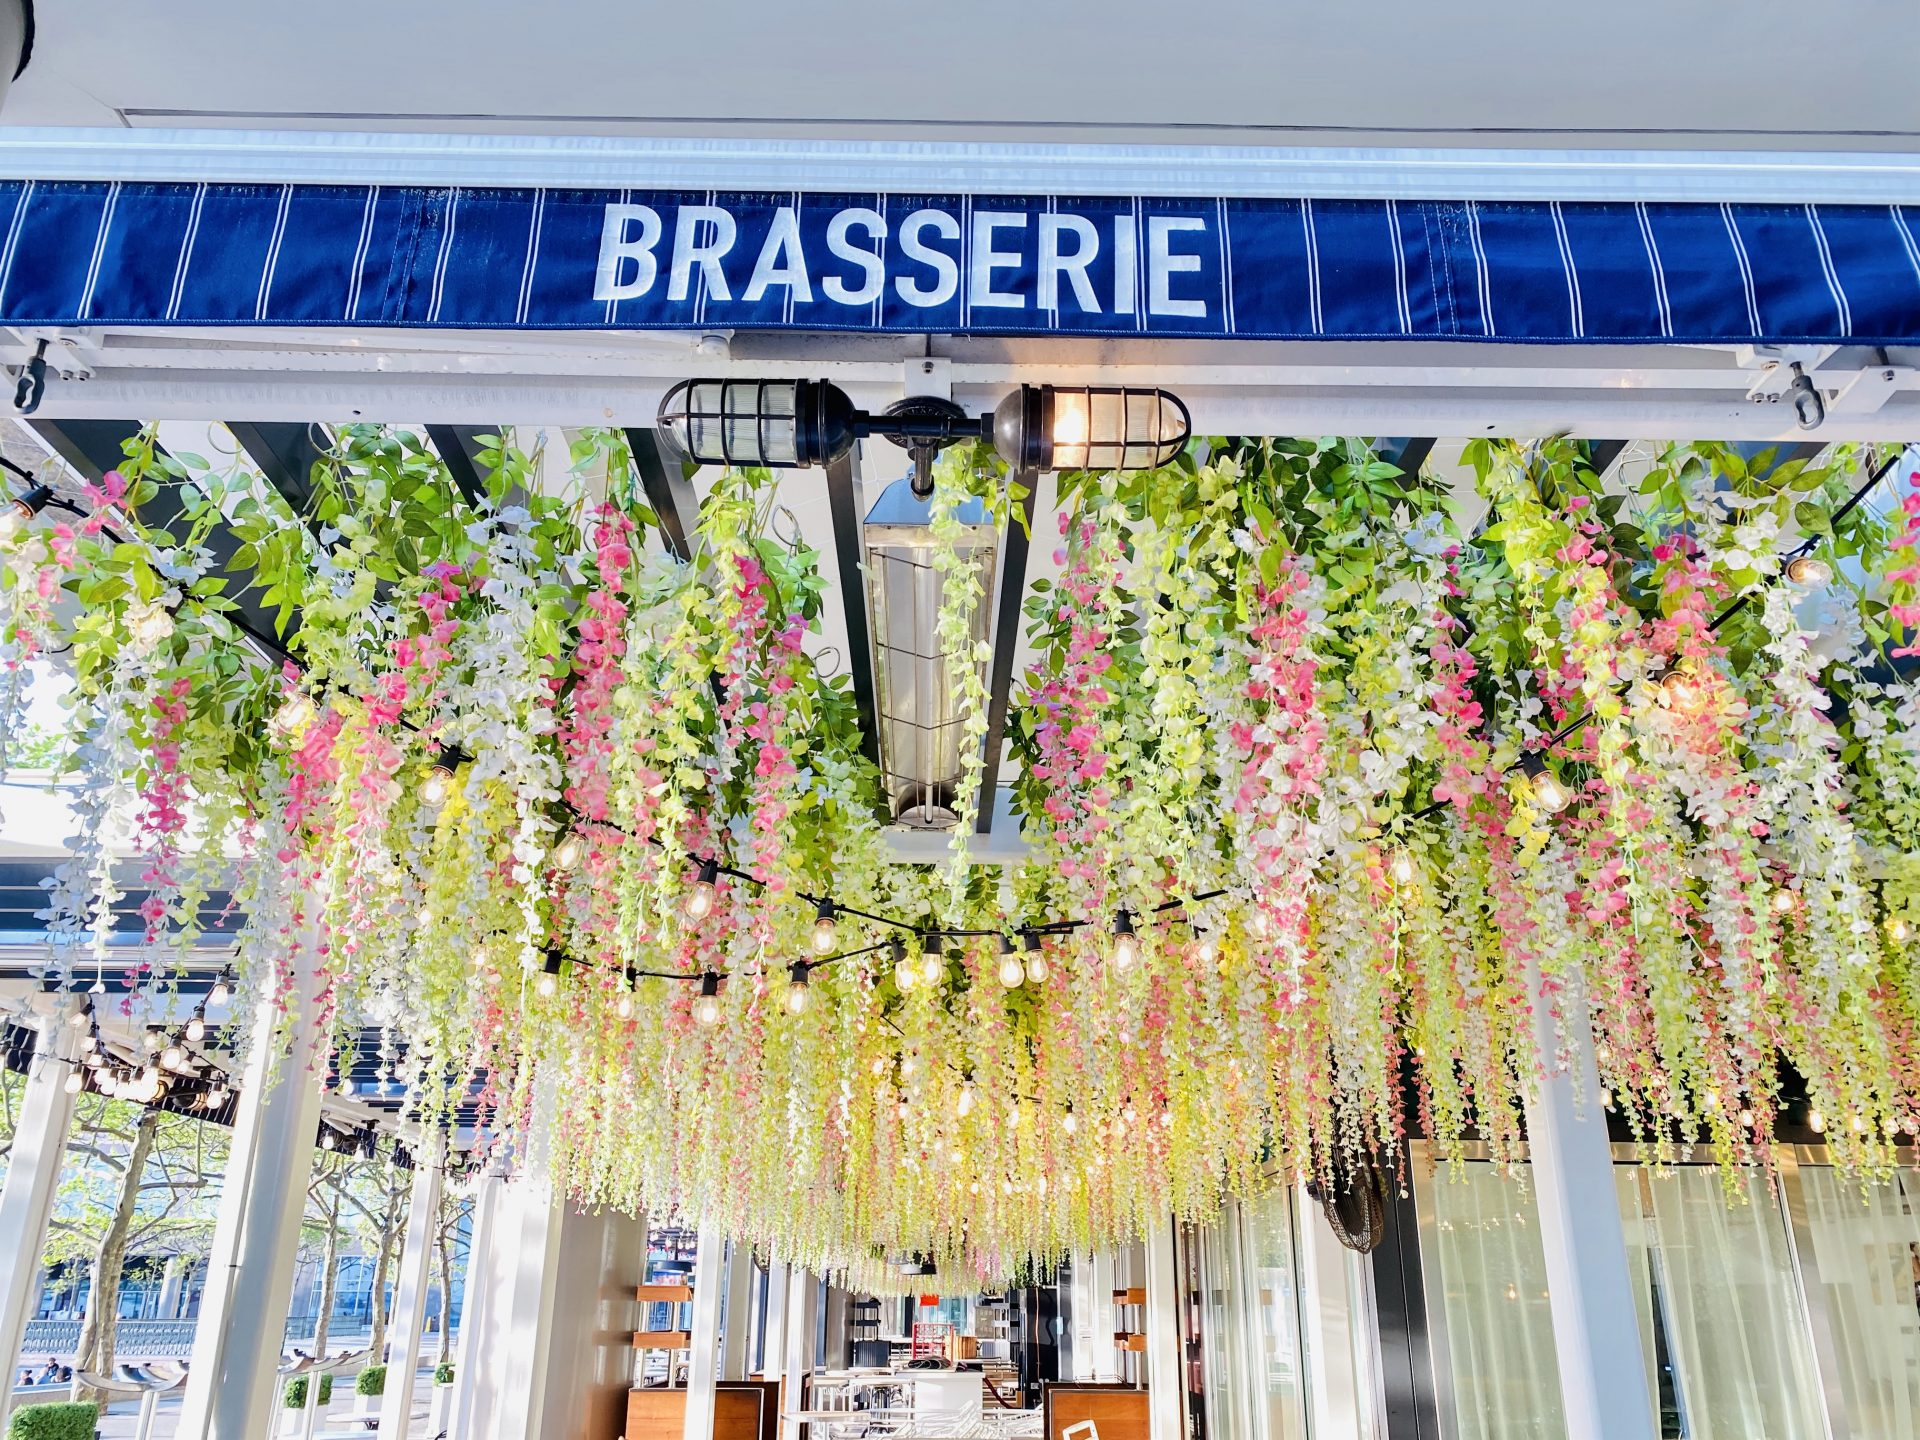 brasserie nyc, brookfield place restaurants, brookfield place, most instagramable nyc, nyc outdoor dining, best outdoor dining nyc, waterfront dining nyc